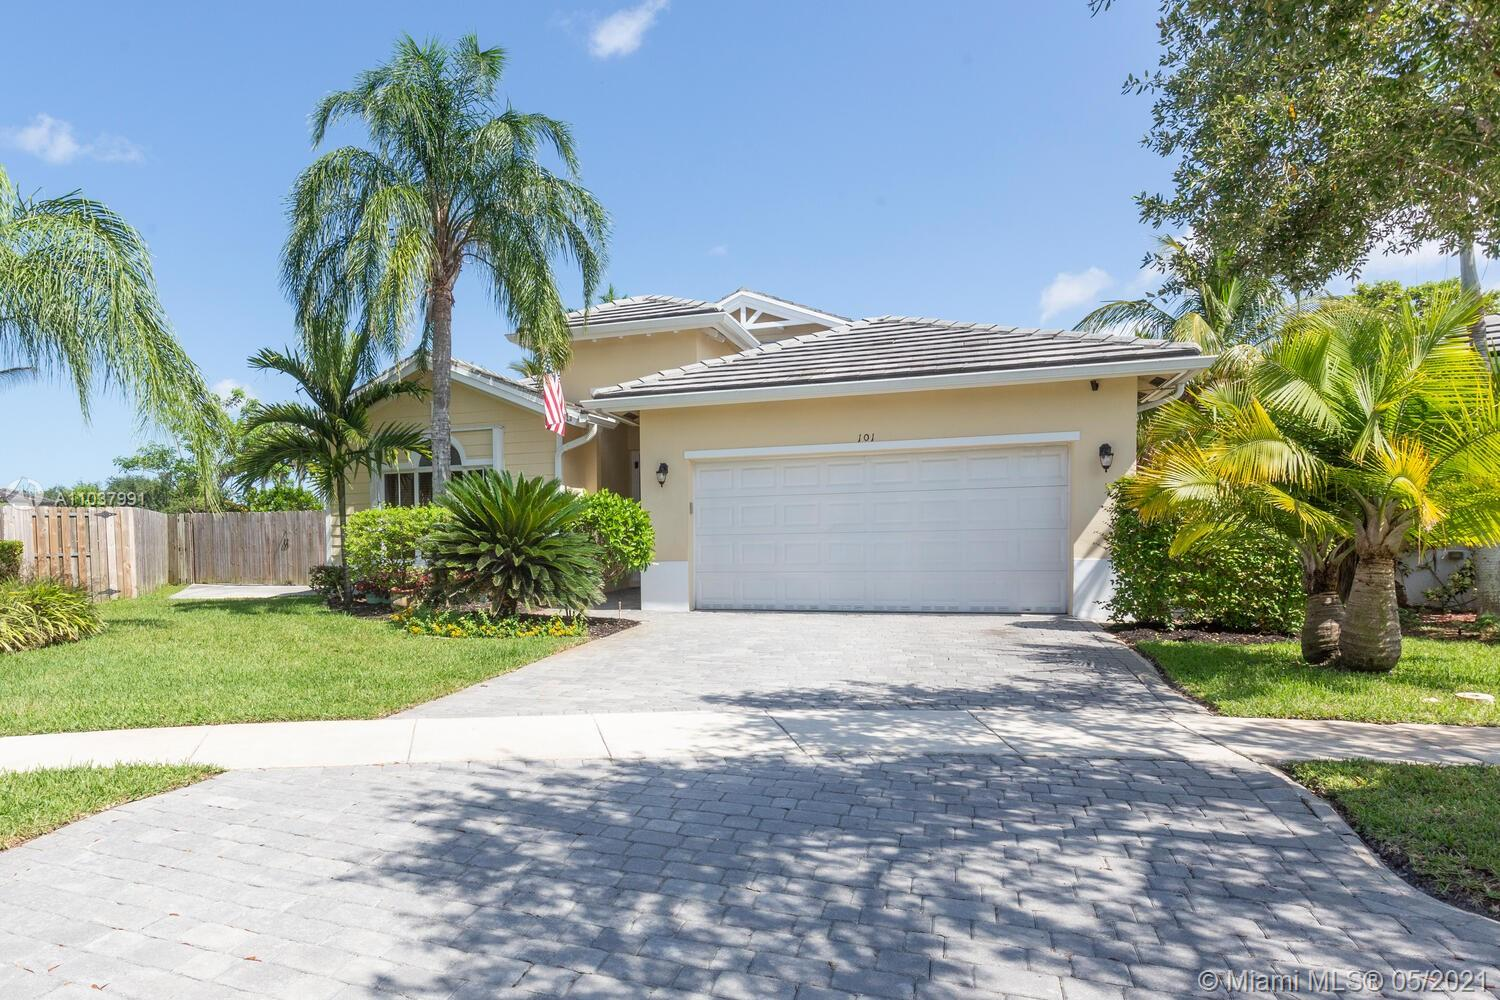 101 NE 35th Ave Property Photo - Homestead, FL real estate listing